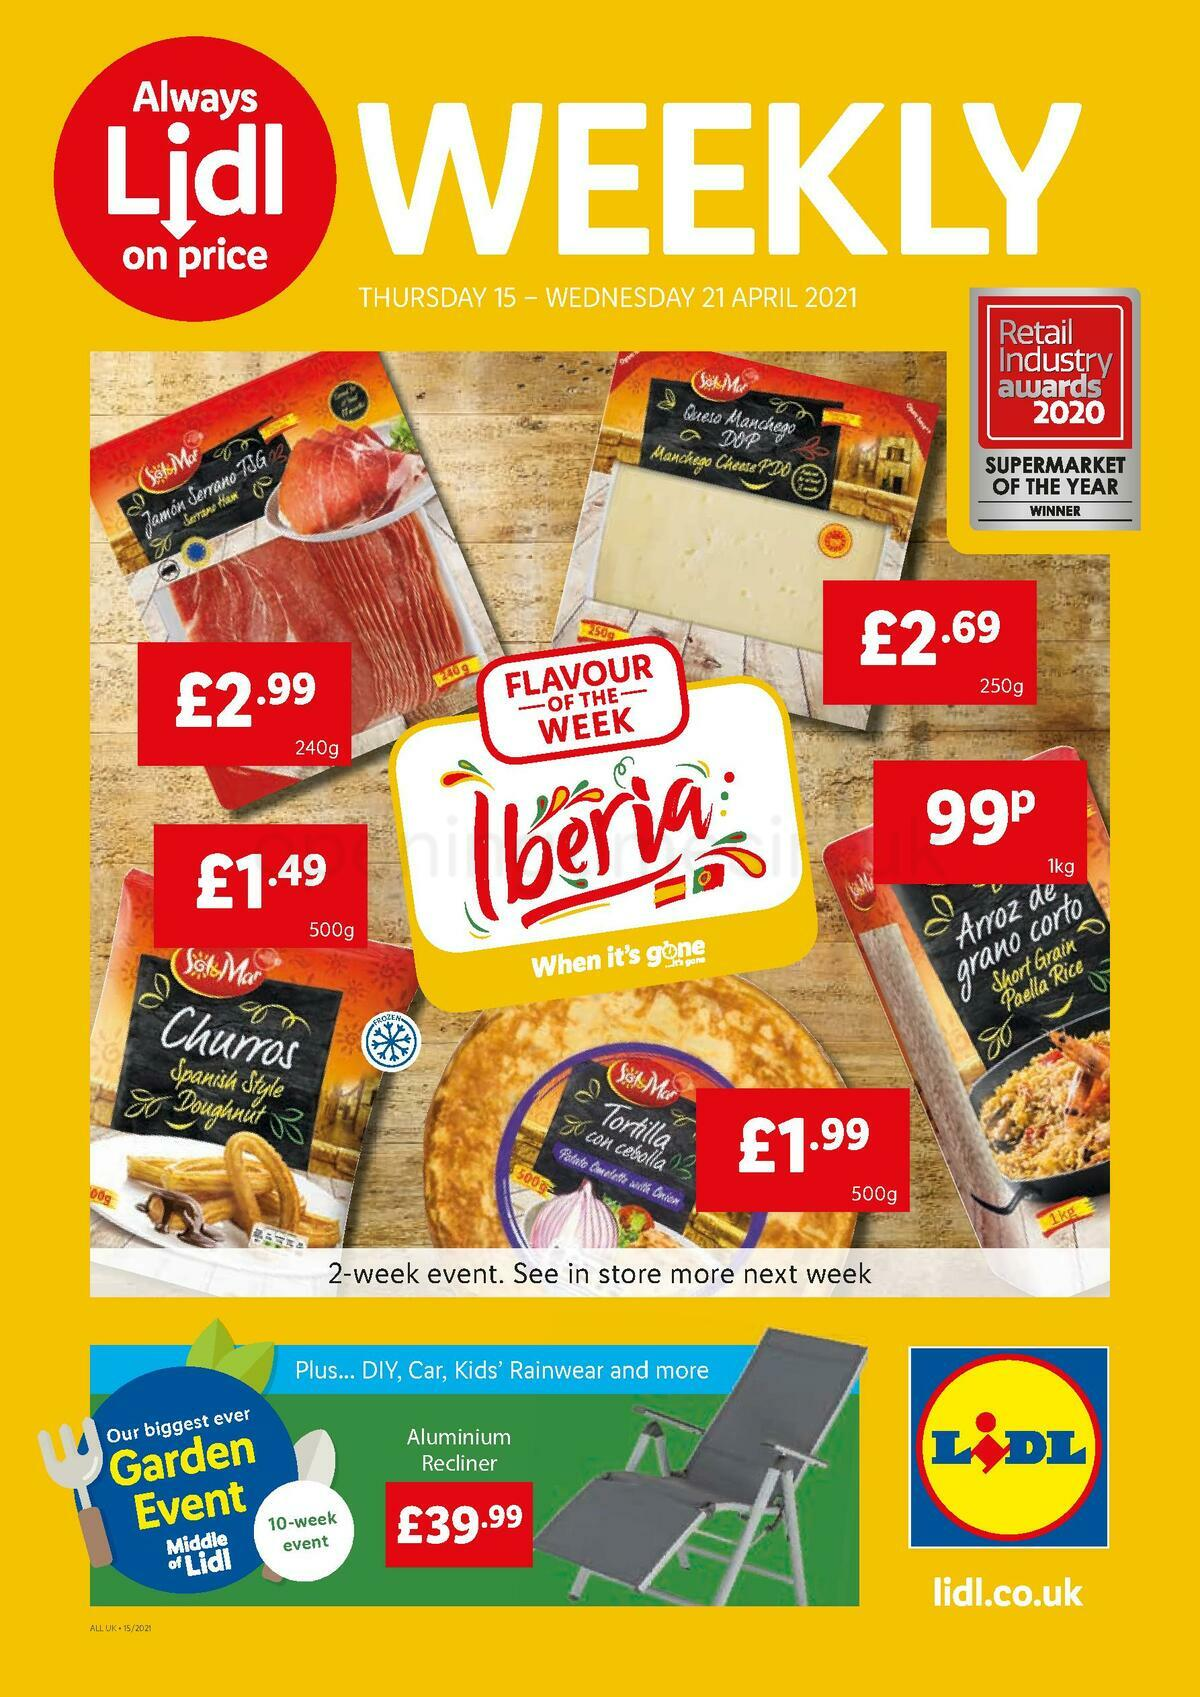 LIDL Offers from April 15